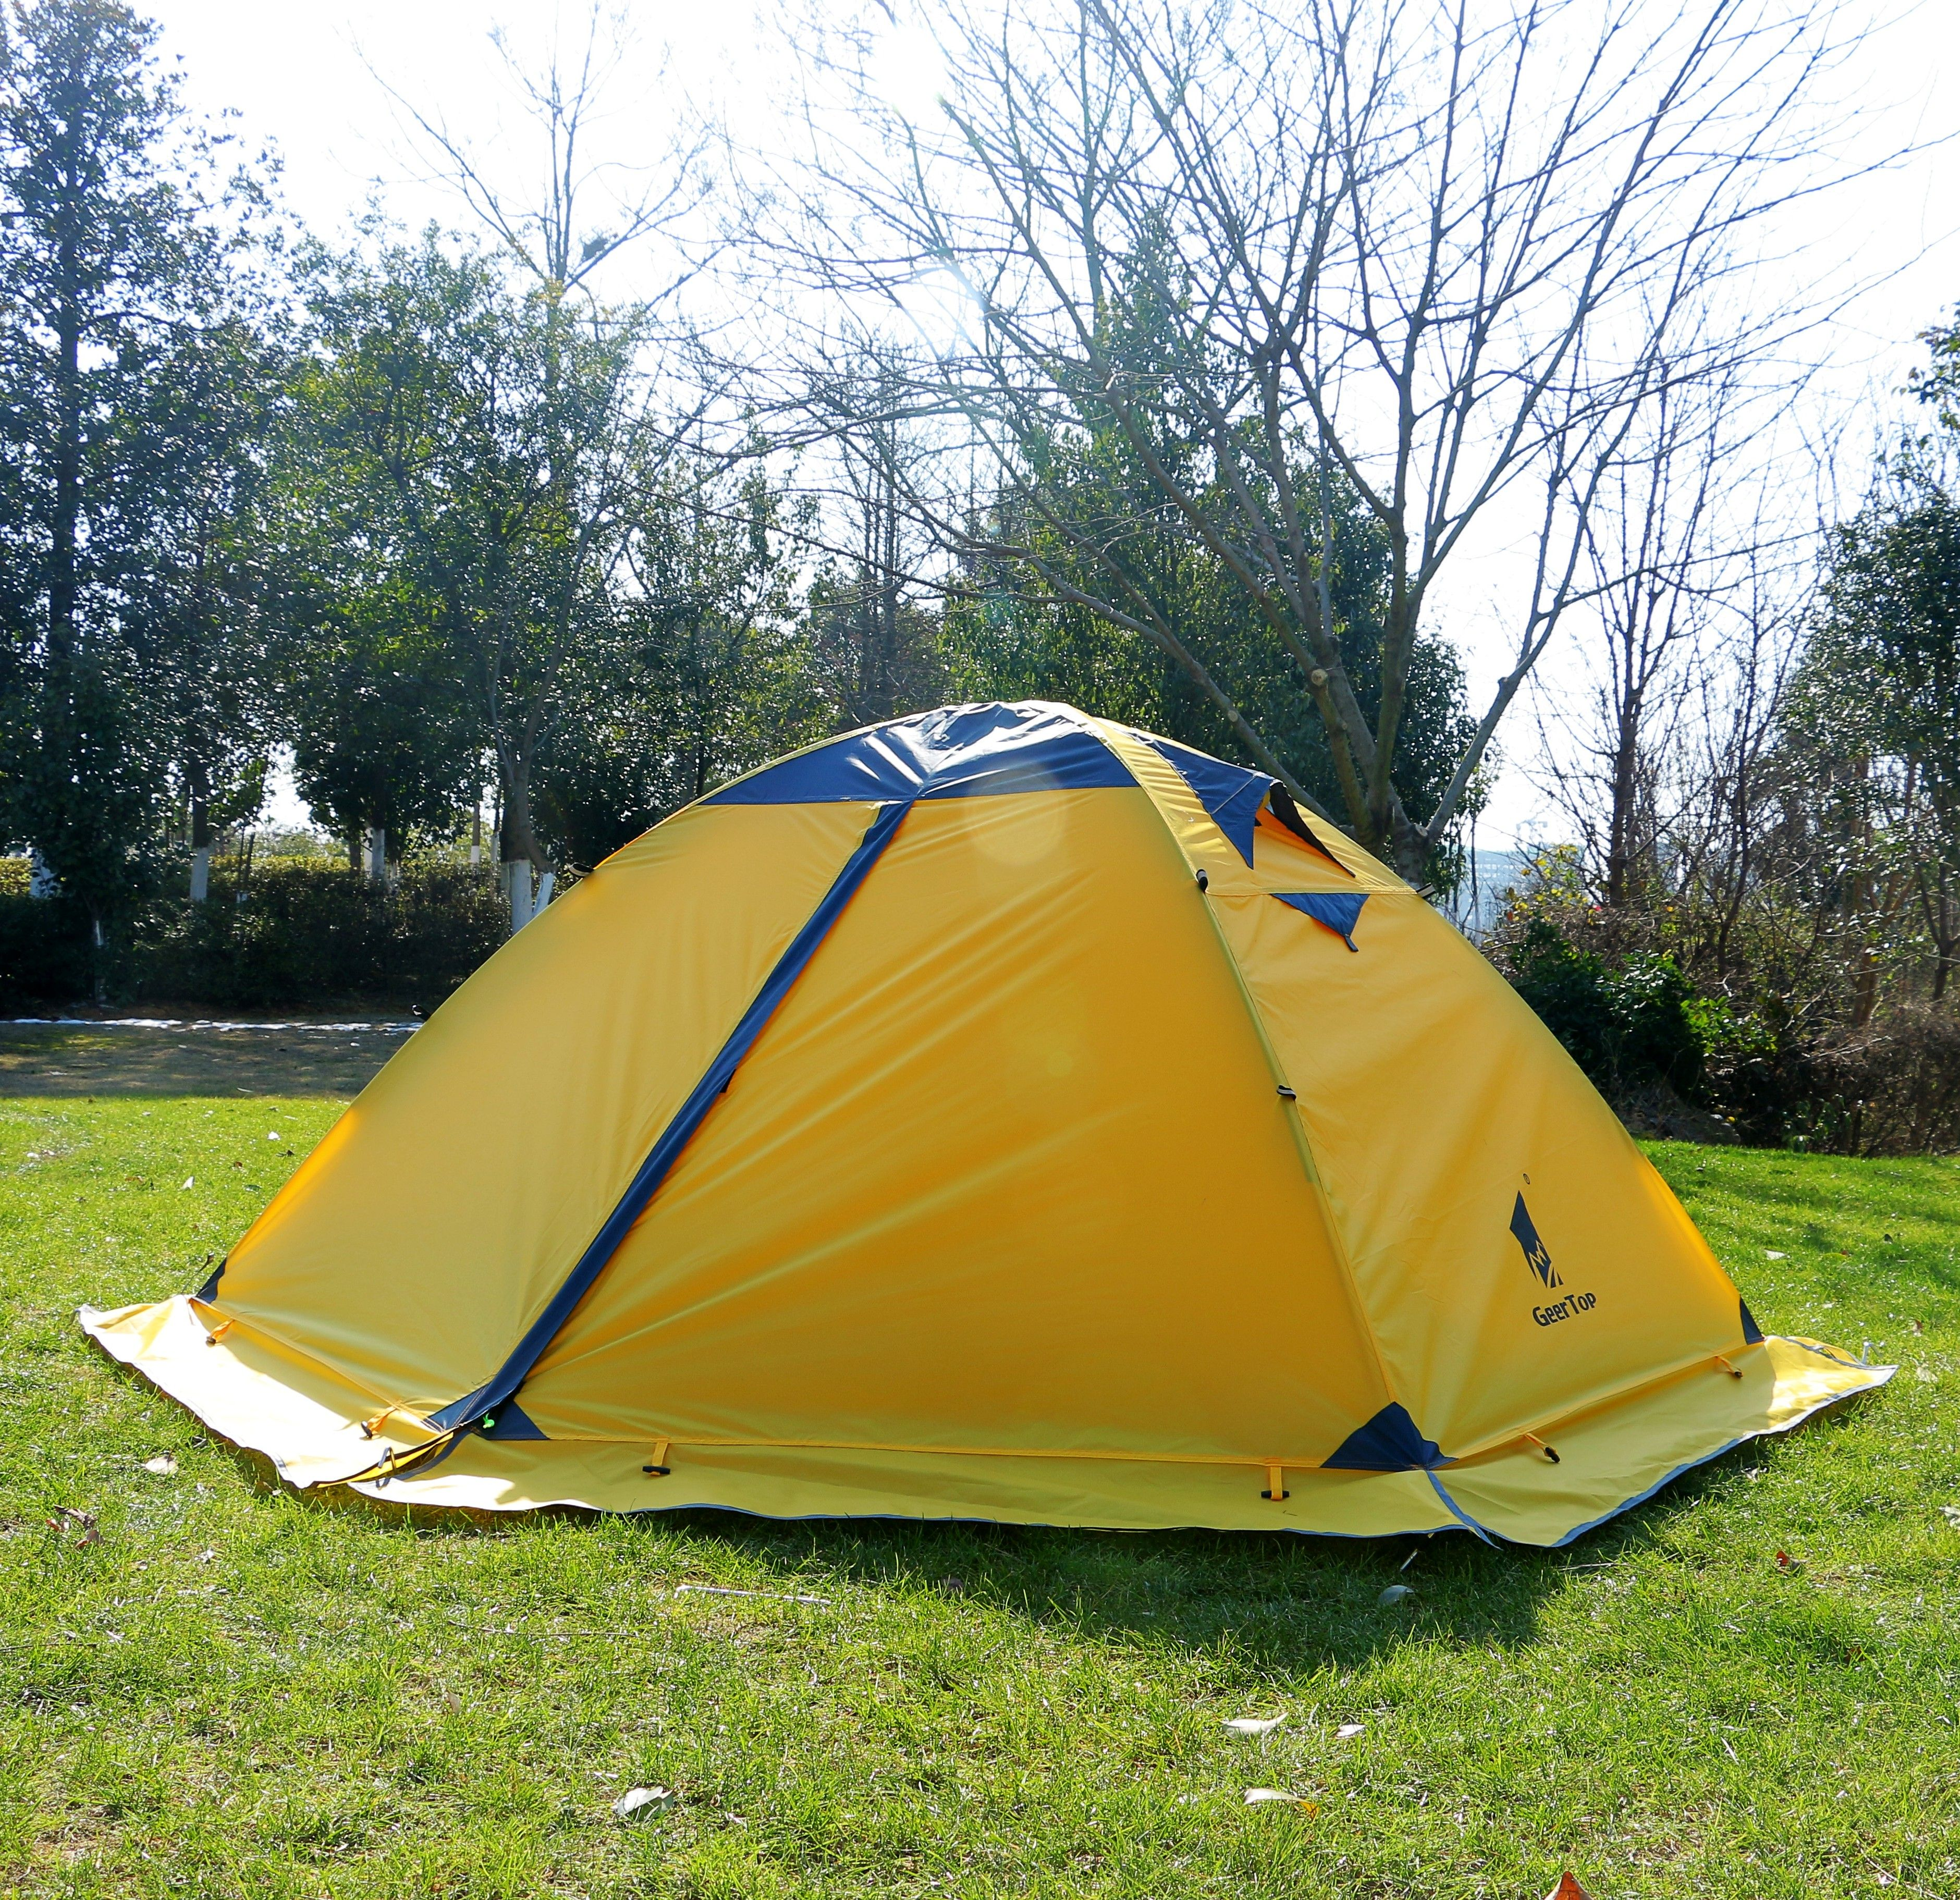 This is a 2 person 4 season lightweight tent suitable for c&ing hiking hunting & $102.99 ! This is a 2 person 4 season lightweight tent suitable ...